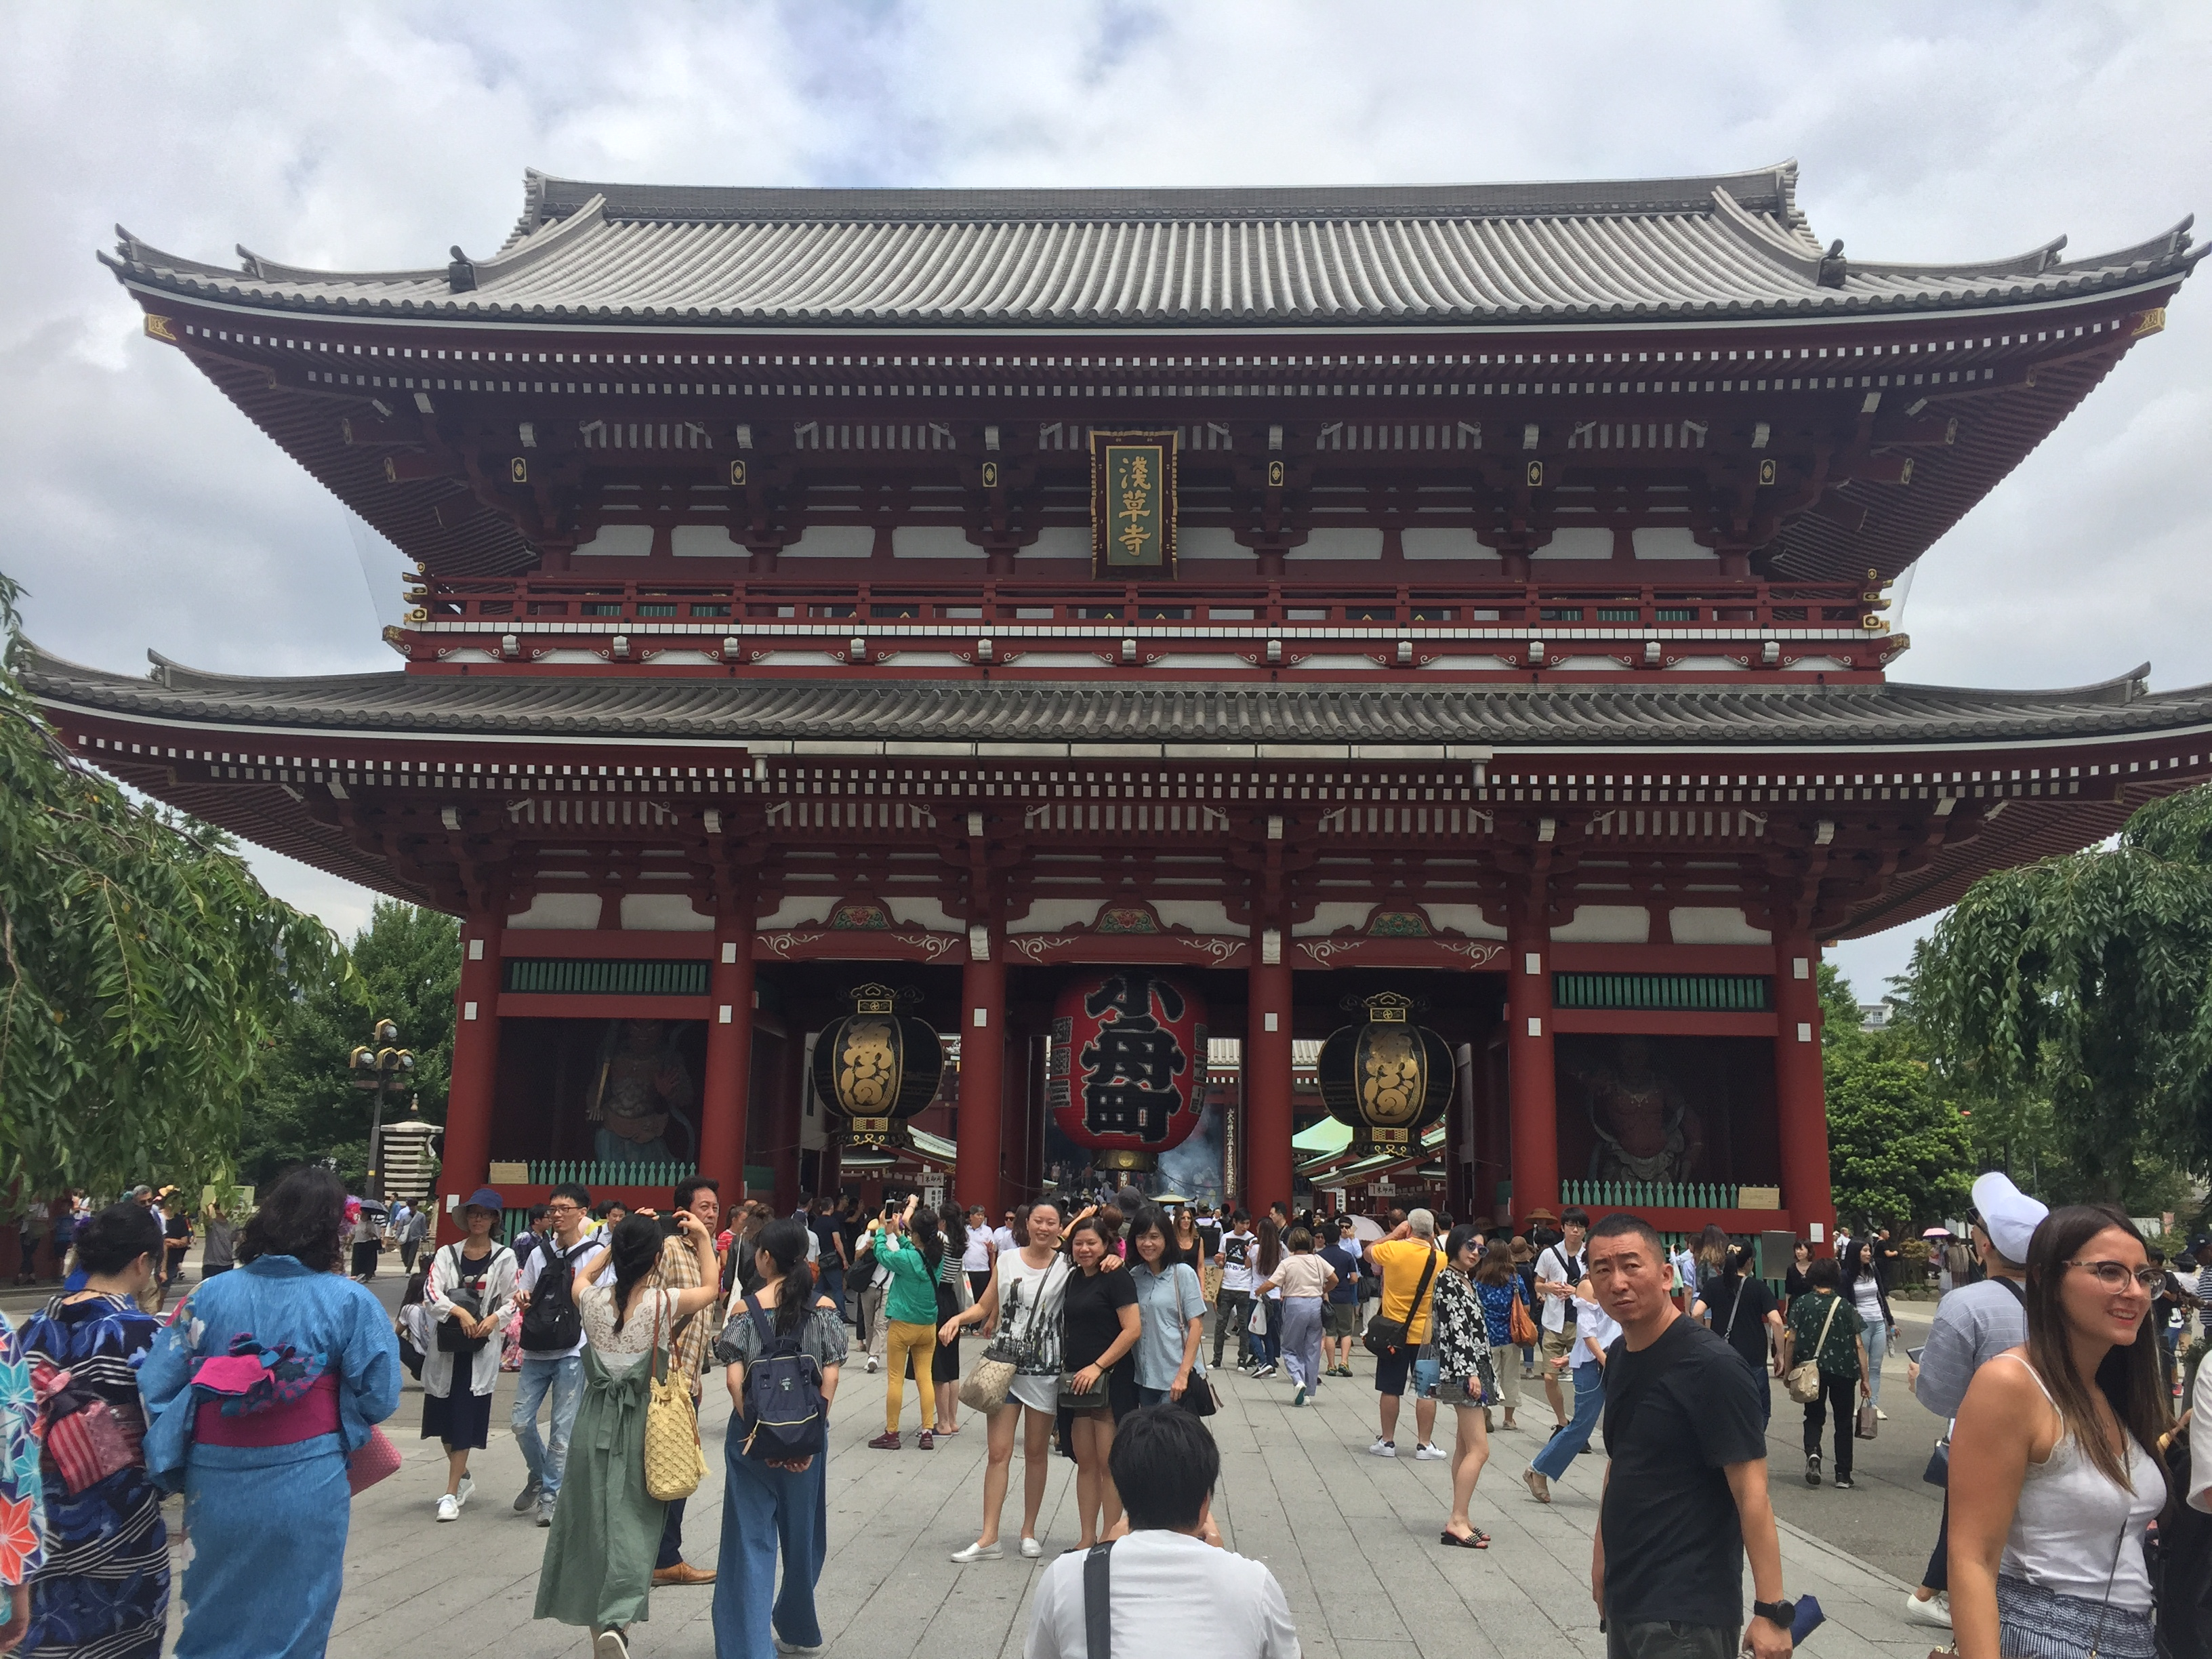 Picture of the main temple at Sensoji